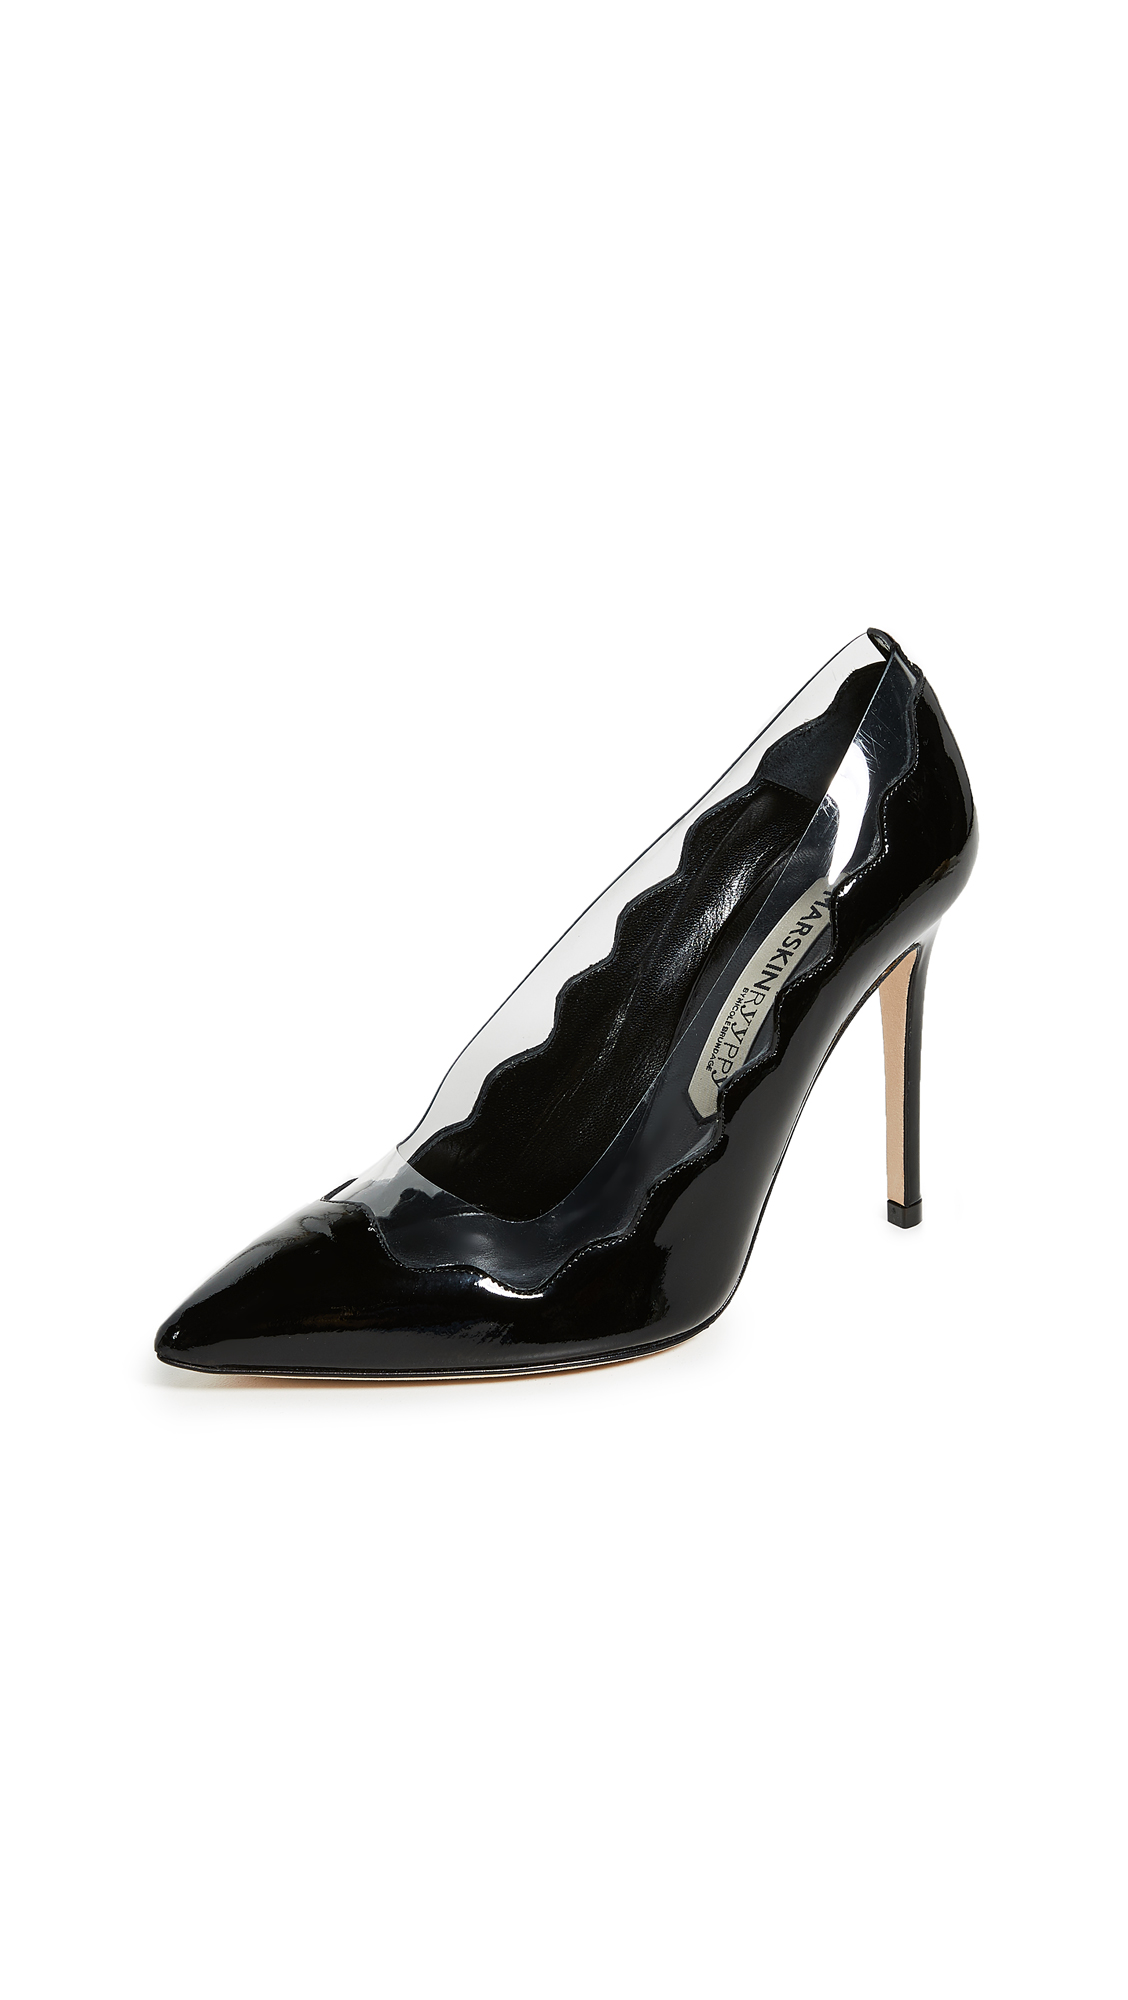 MARSKINRYYPPY Yva Pumps - Black